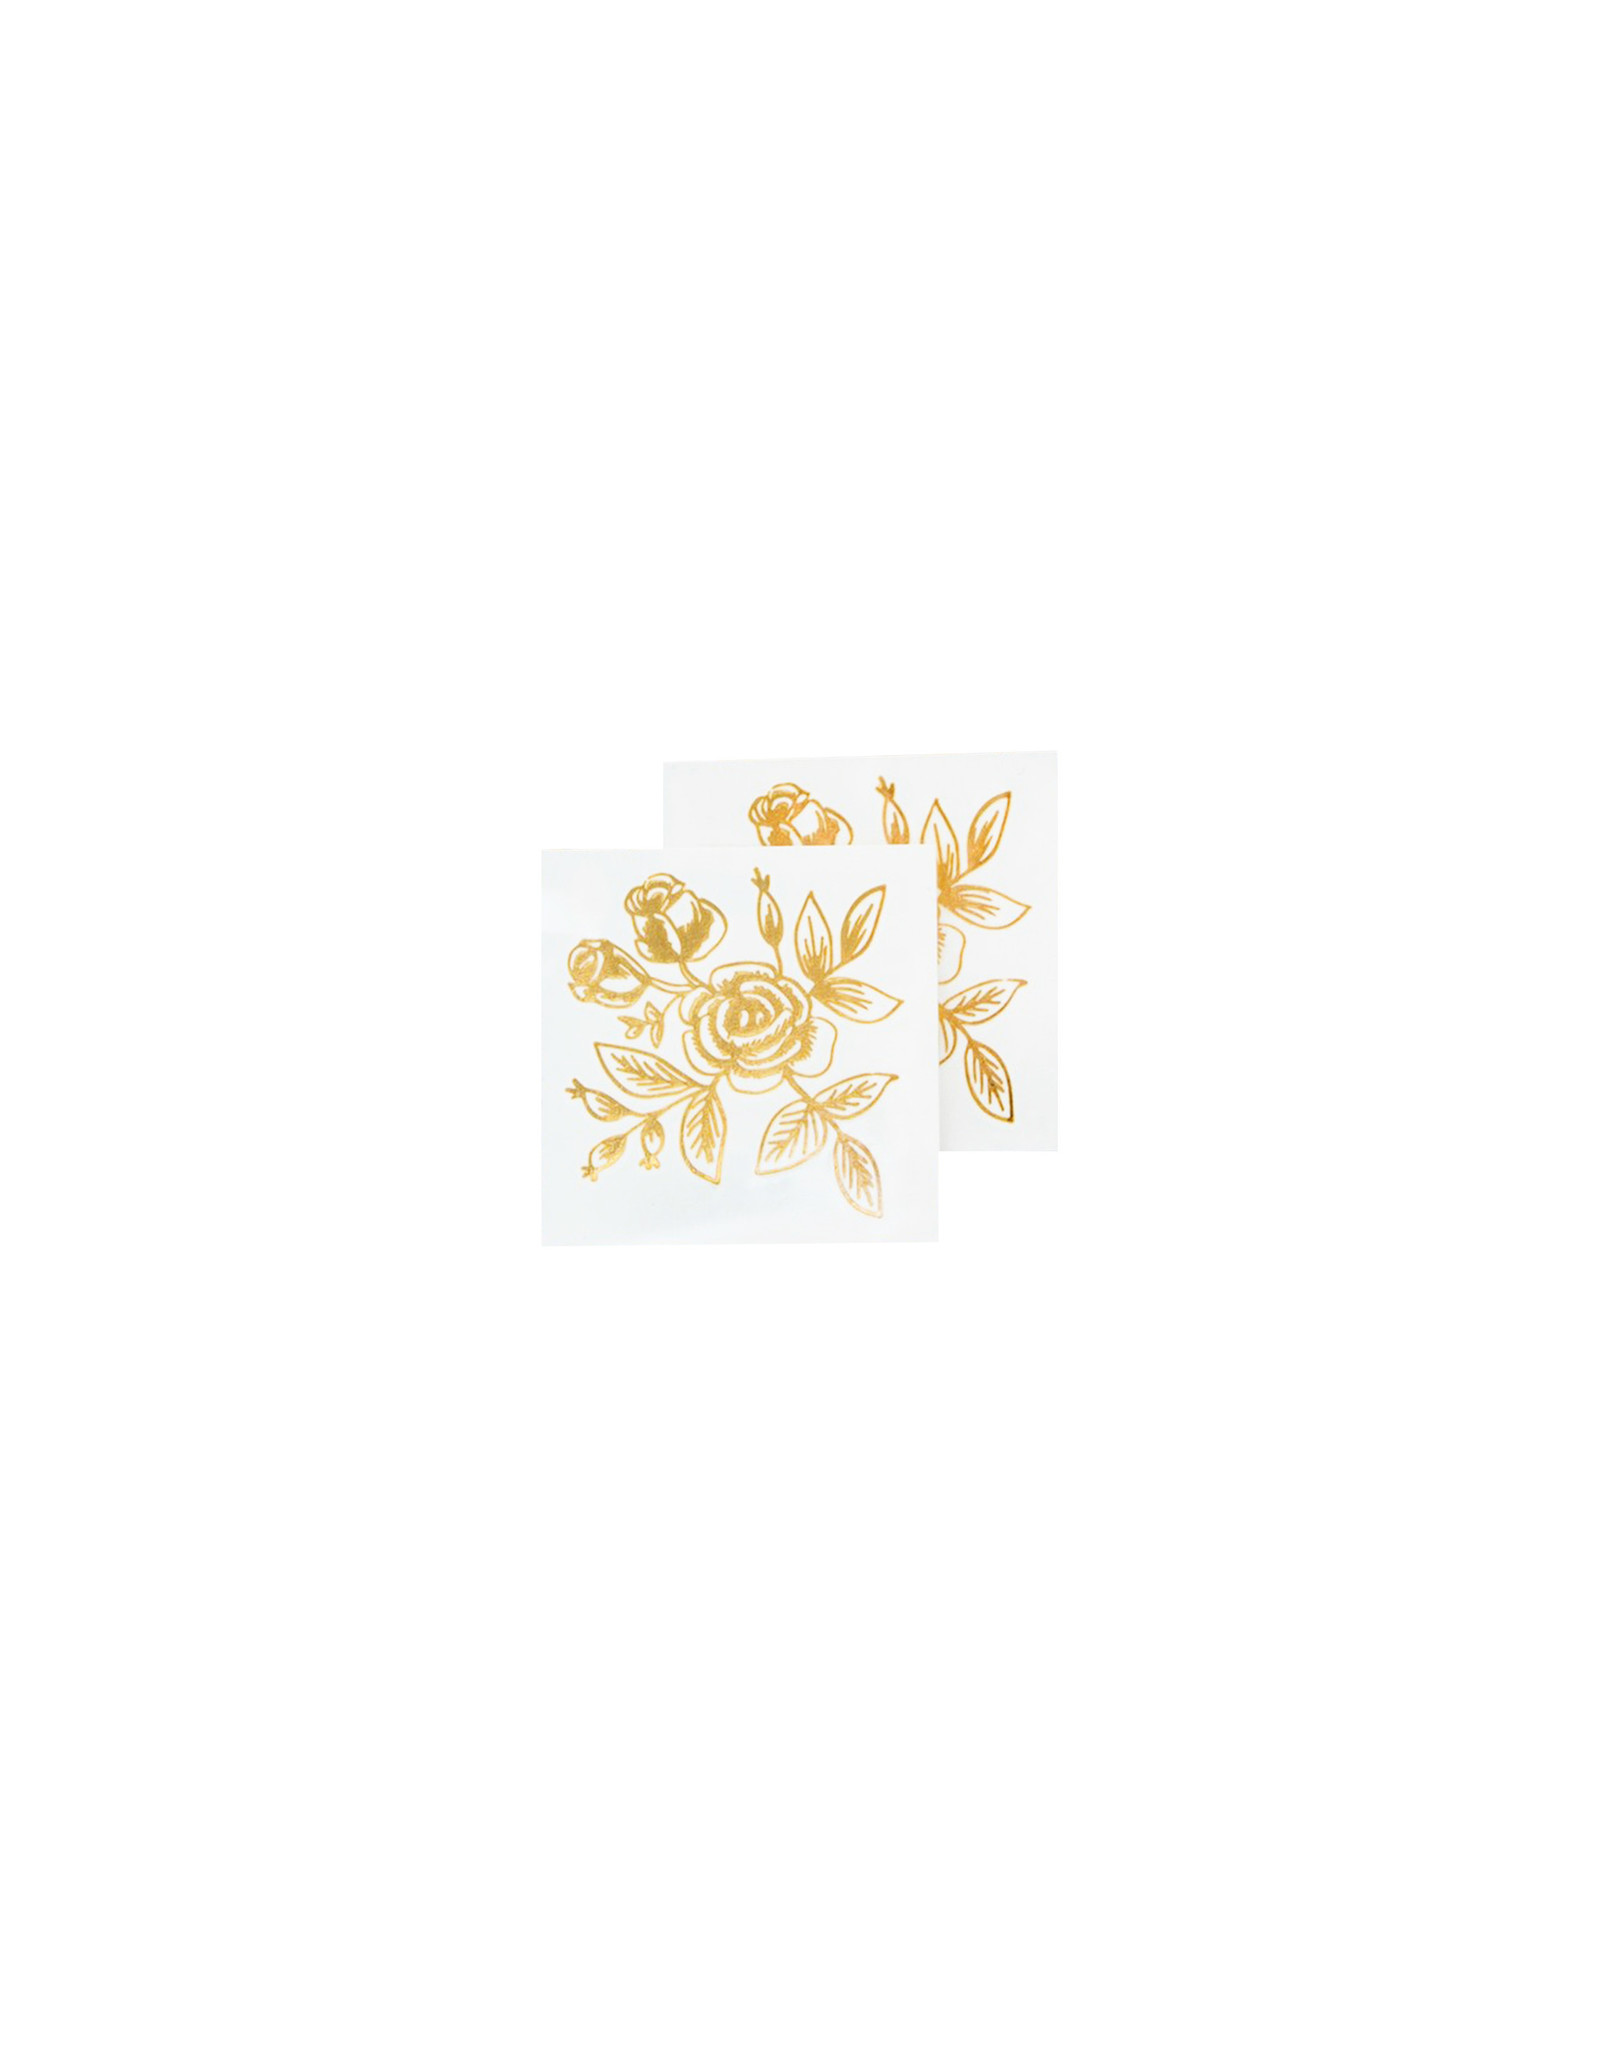 Tattly Gold Floral Set of 2